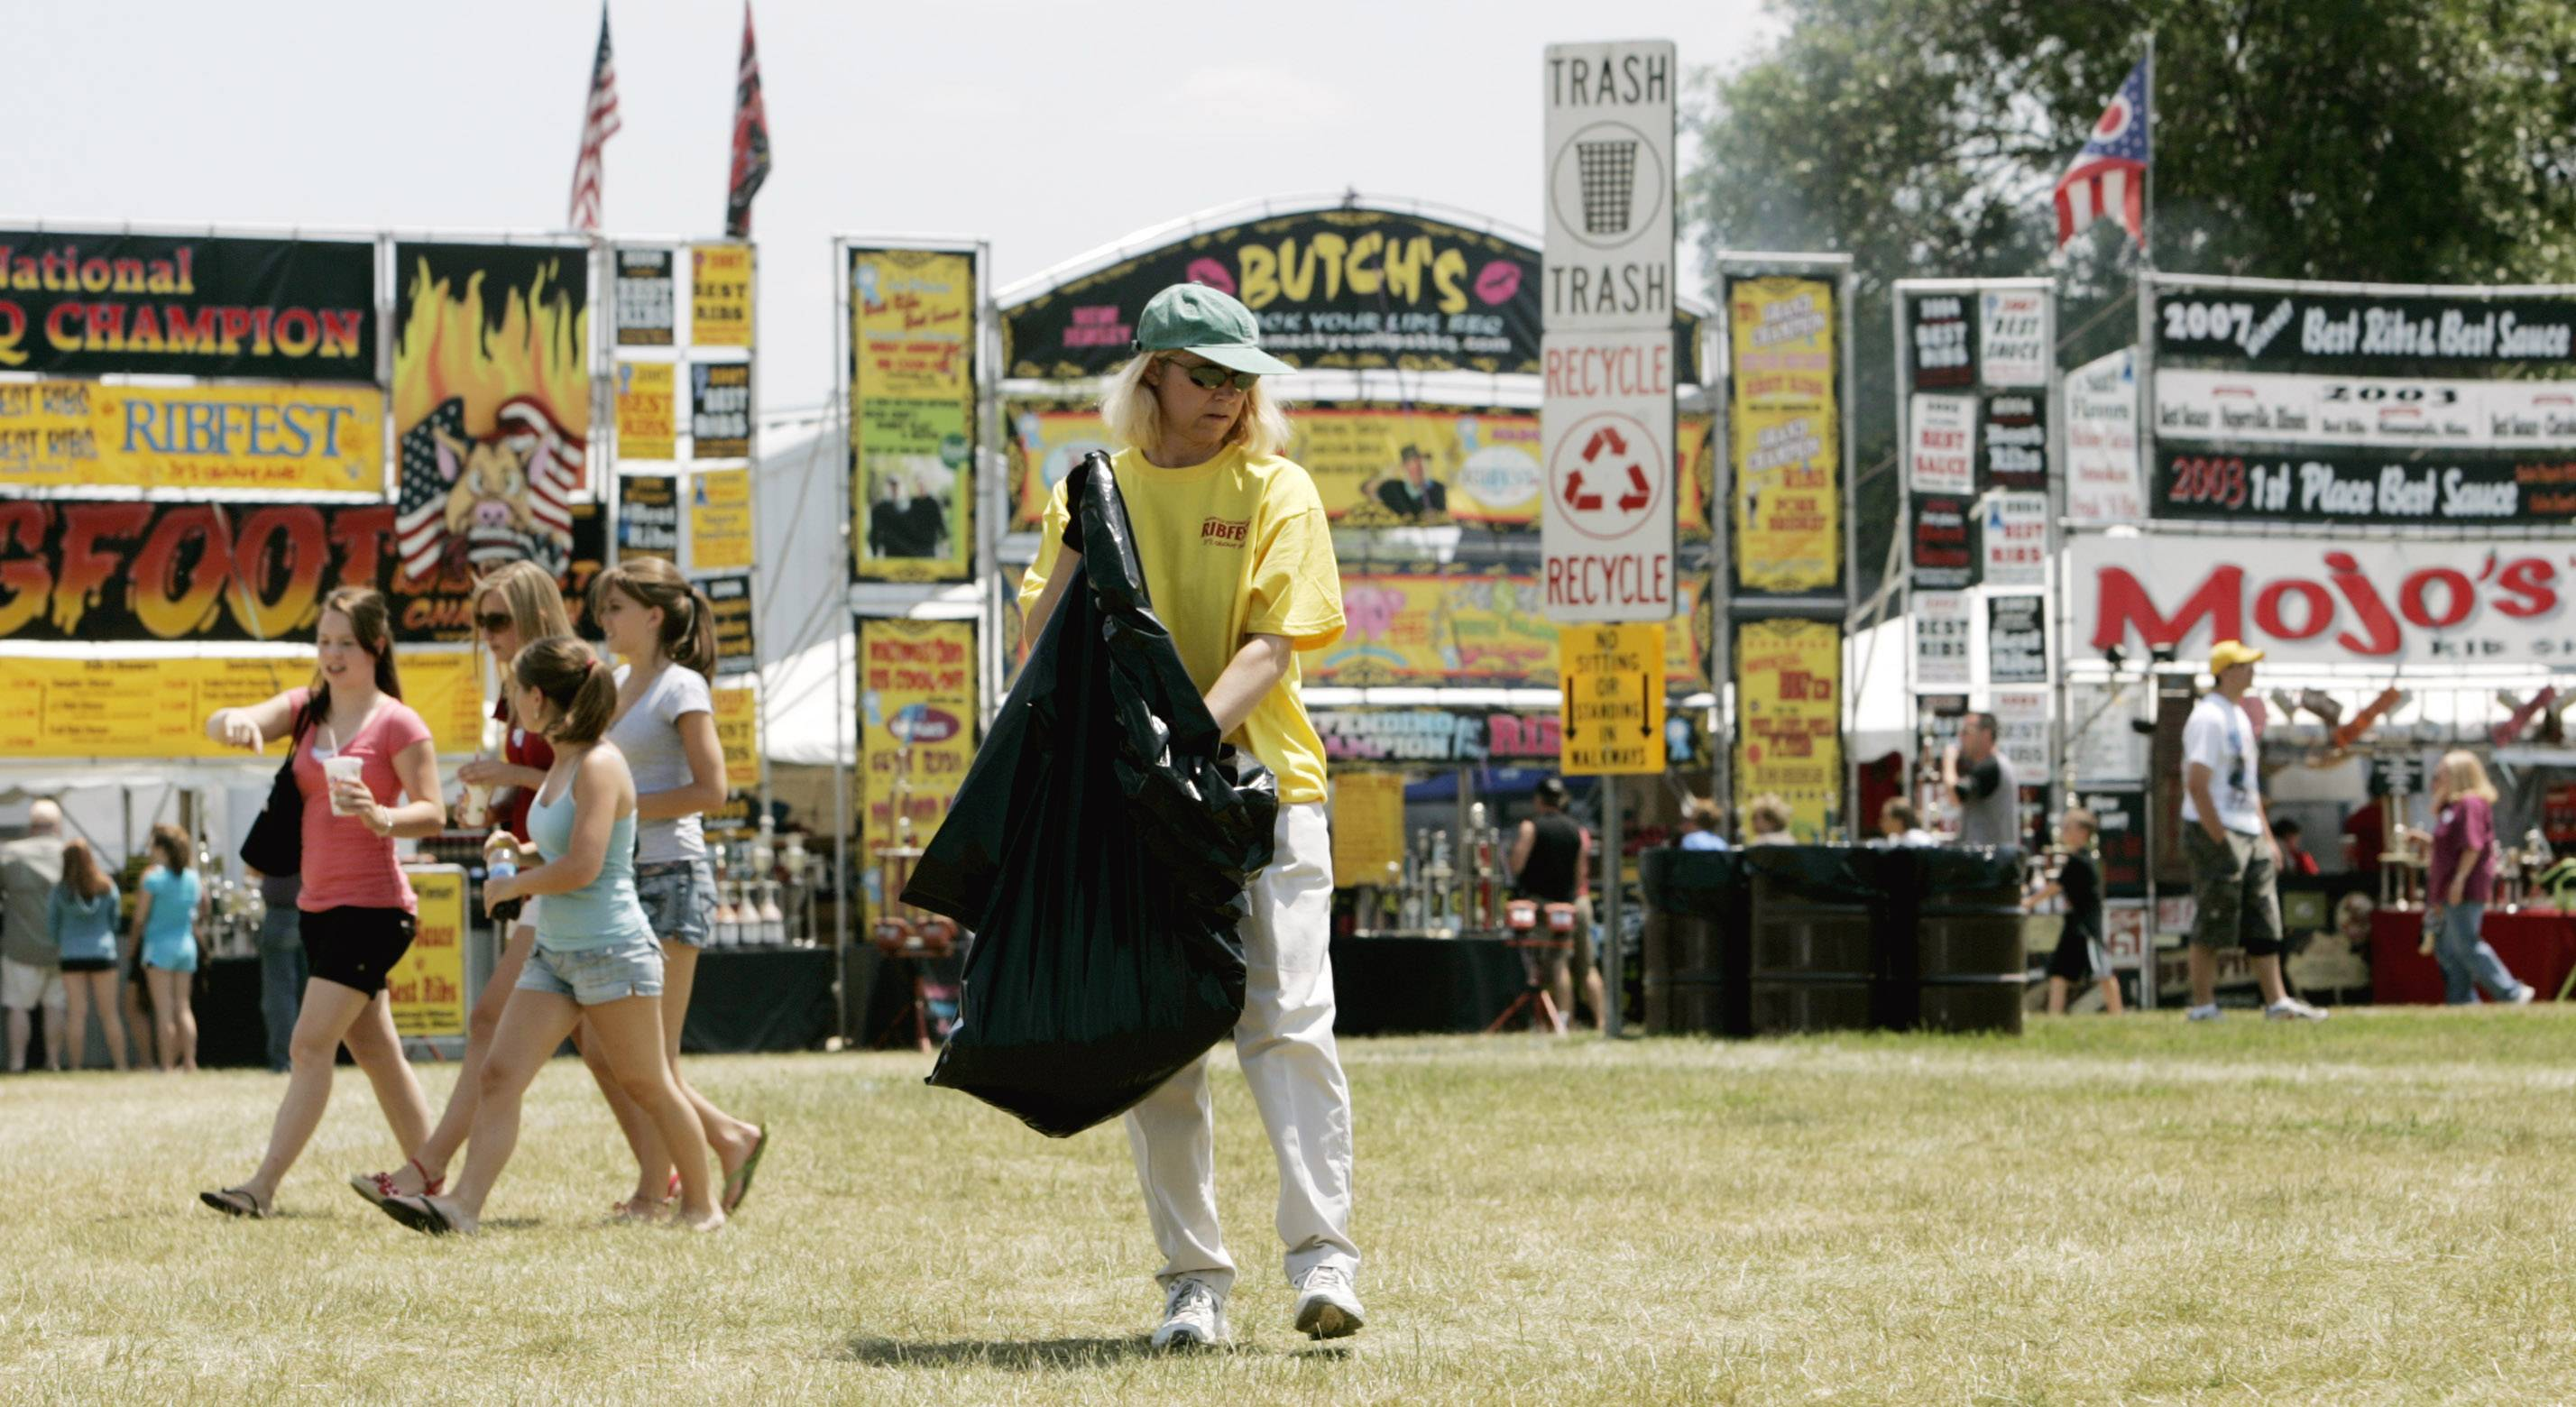 31 committees, 4,000 volunteers who make Ribfest run